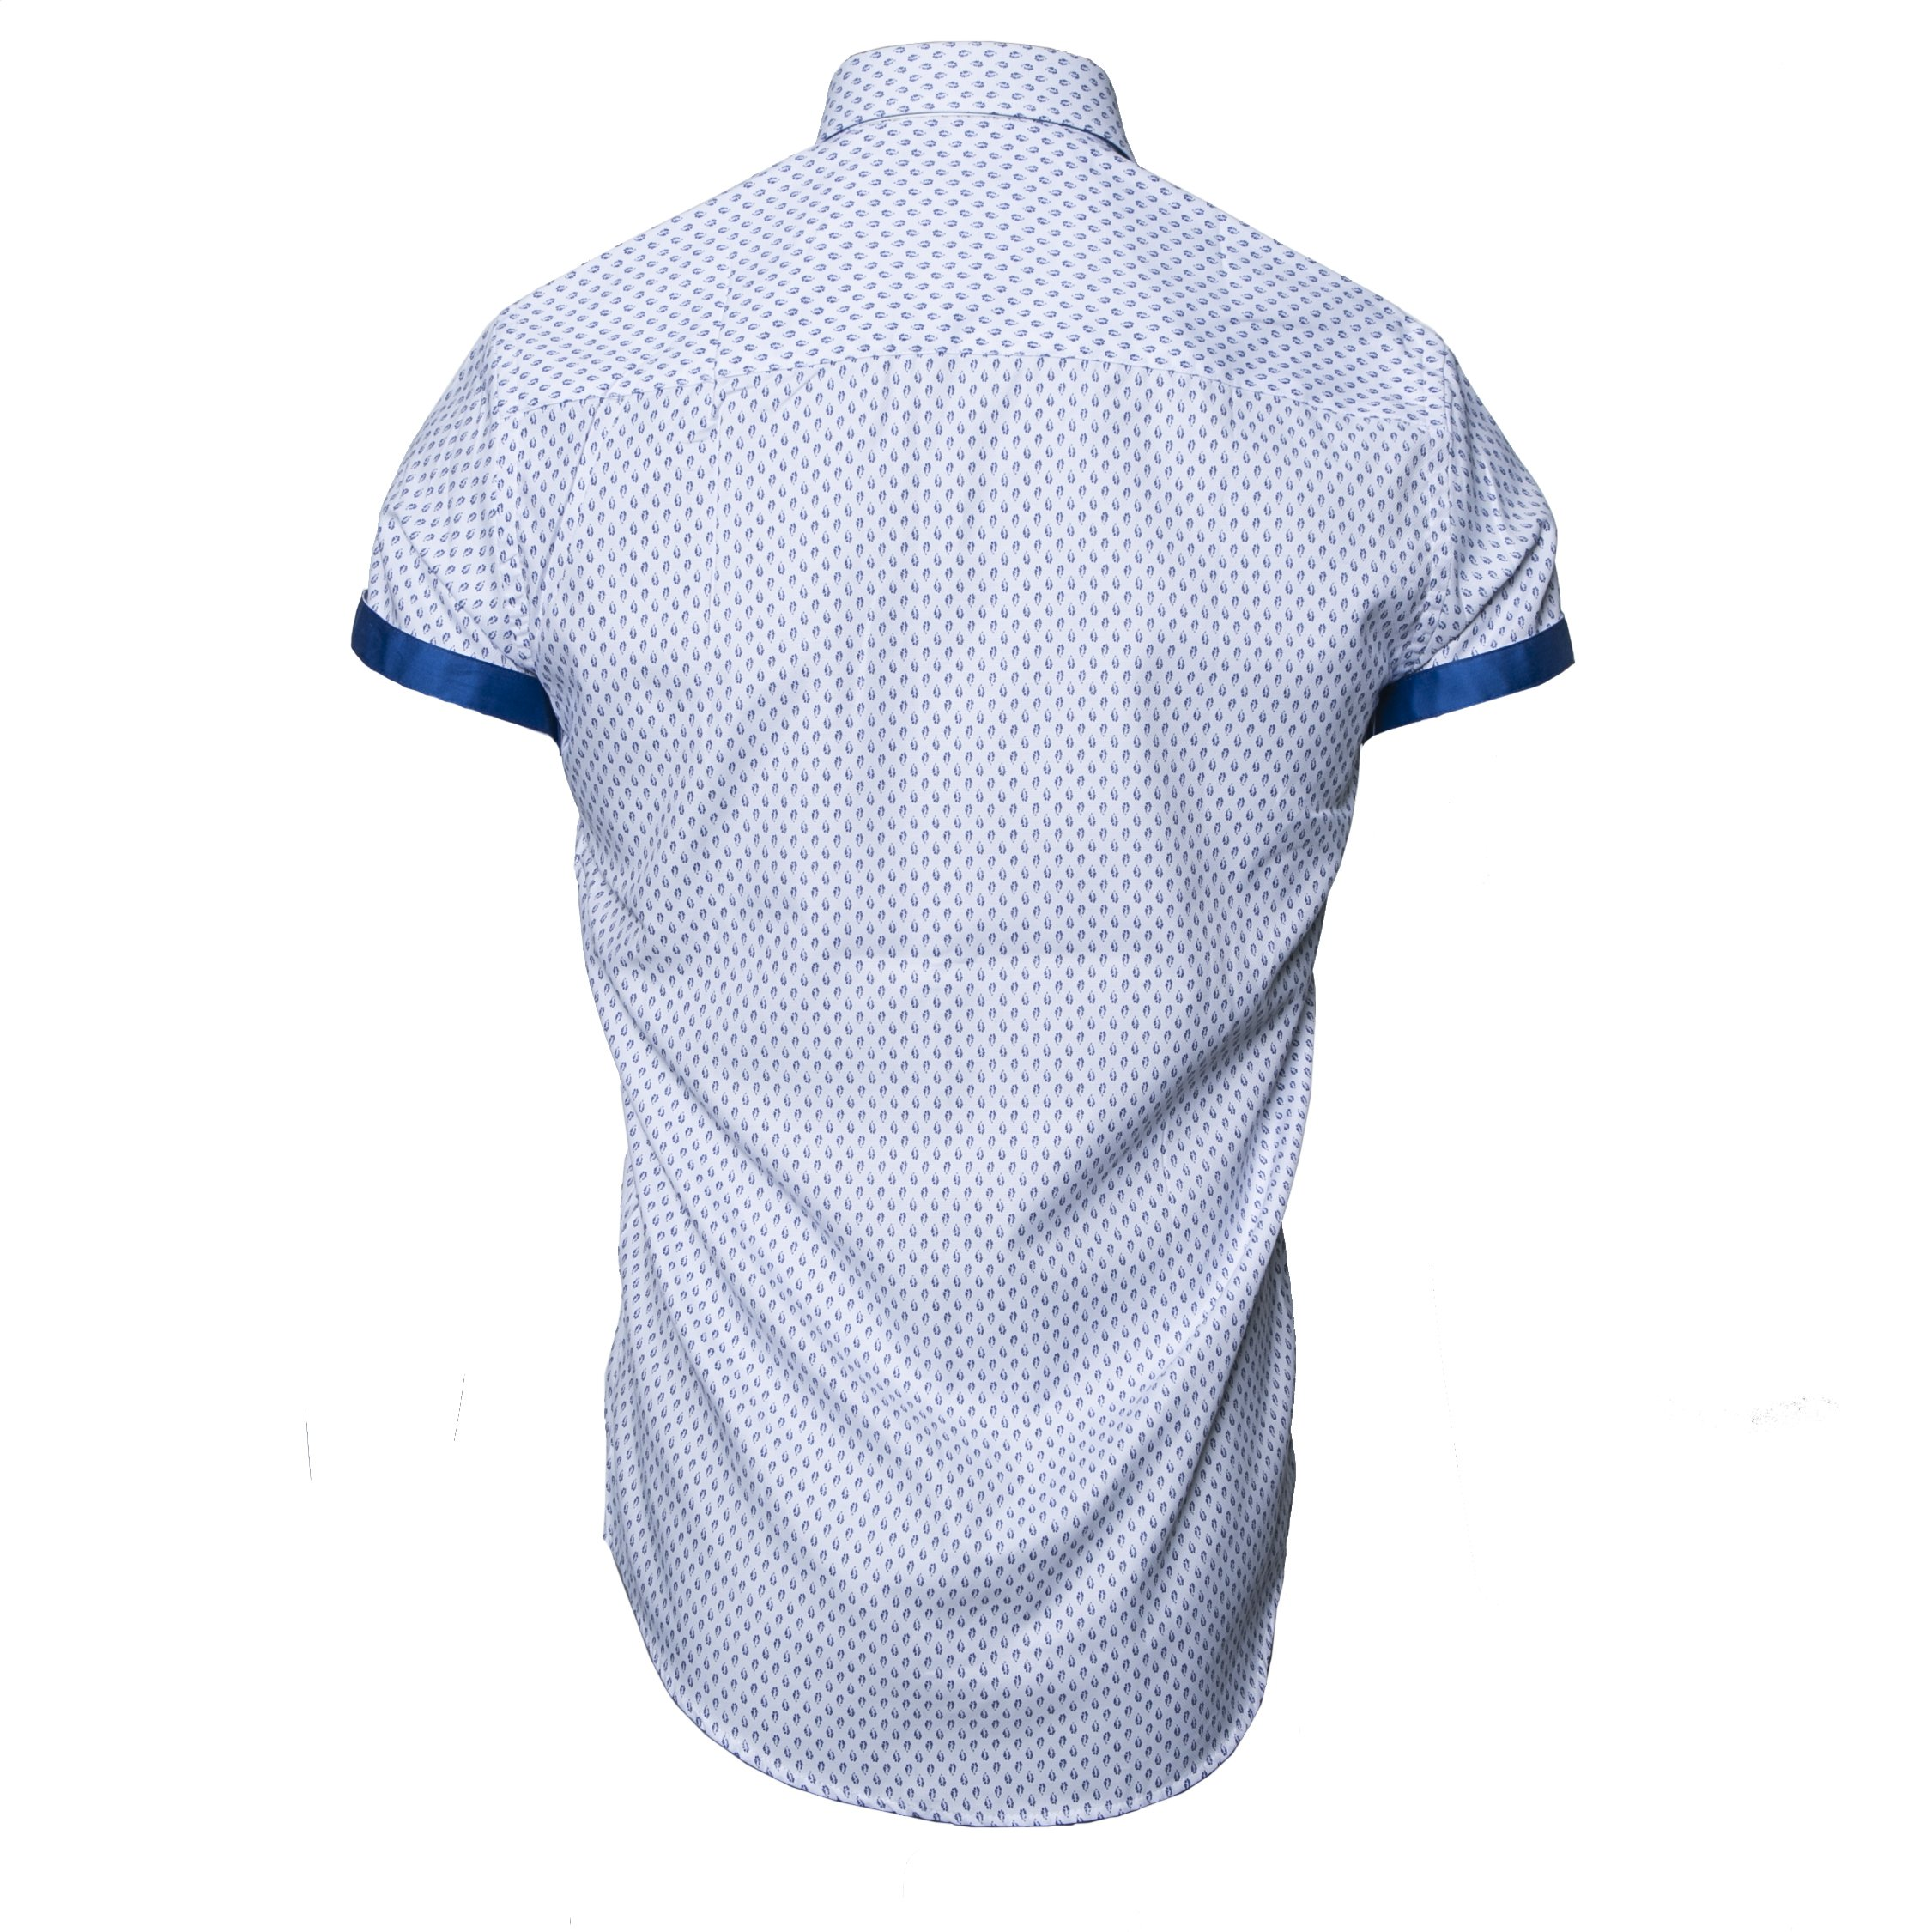 MIURA WHITE/BLUE SHORT SLEEVE SHIRT